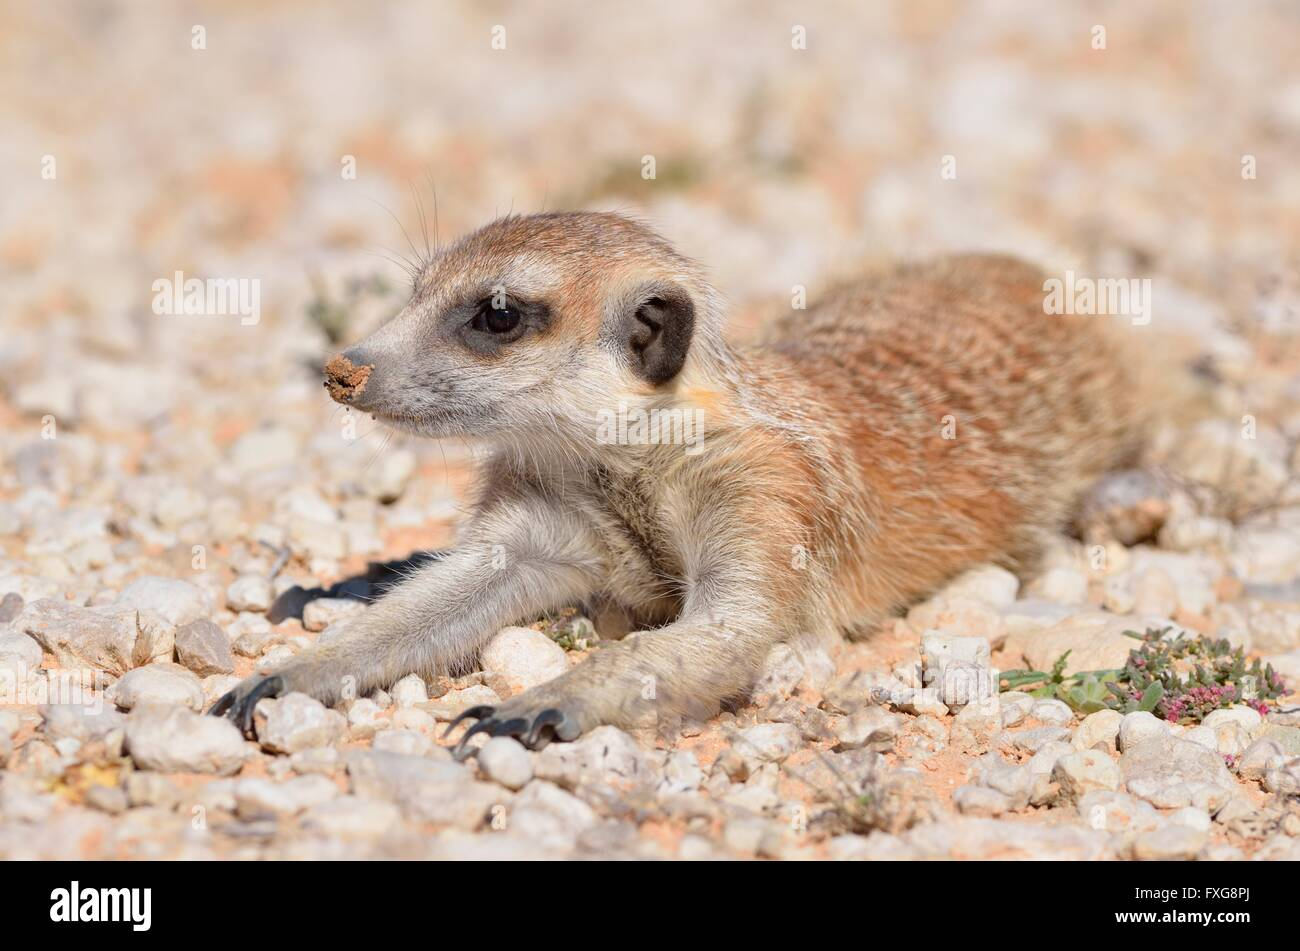 Meerkat (Suricata suricatta), young male, lying down on gravel, Kgalagadi Transfrontier Park, Northern Cape, South - Stock Image